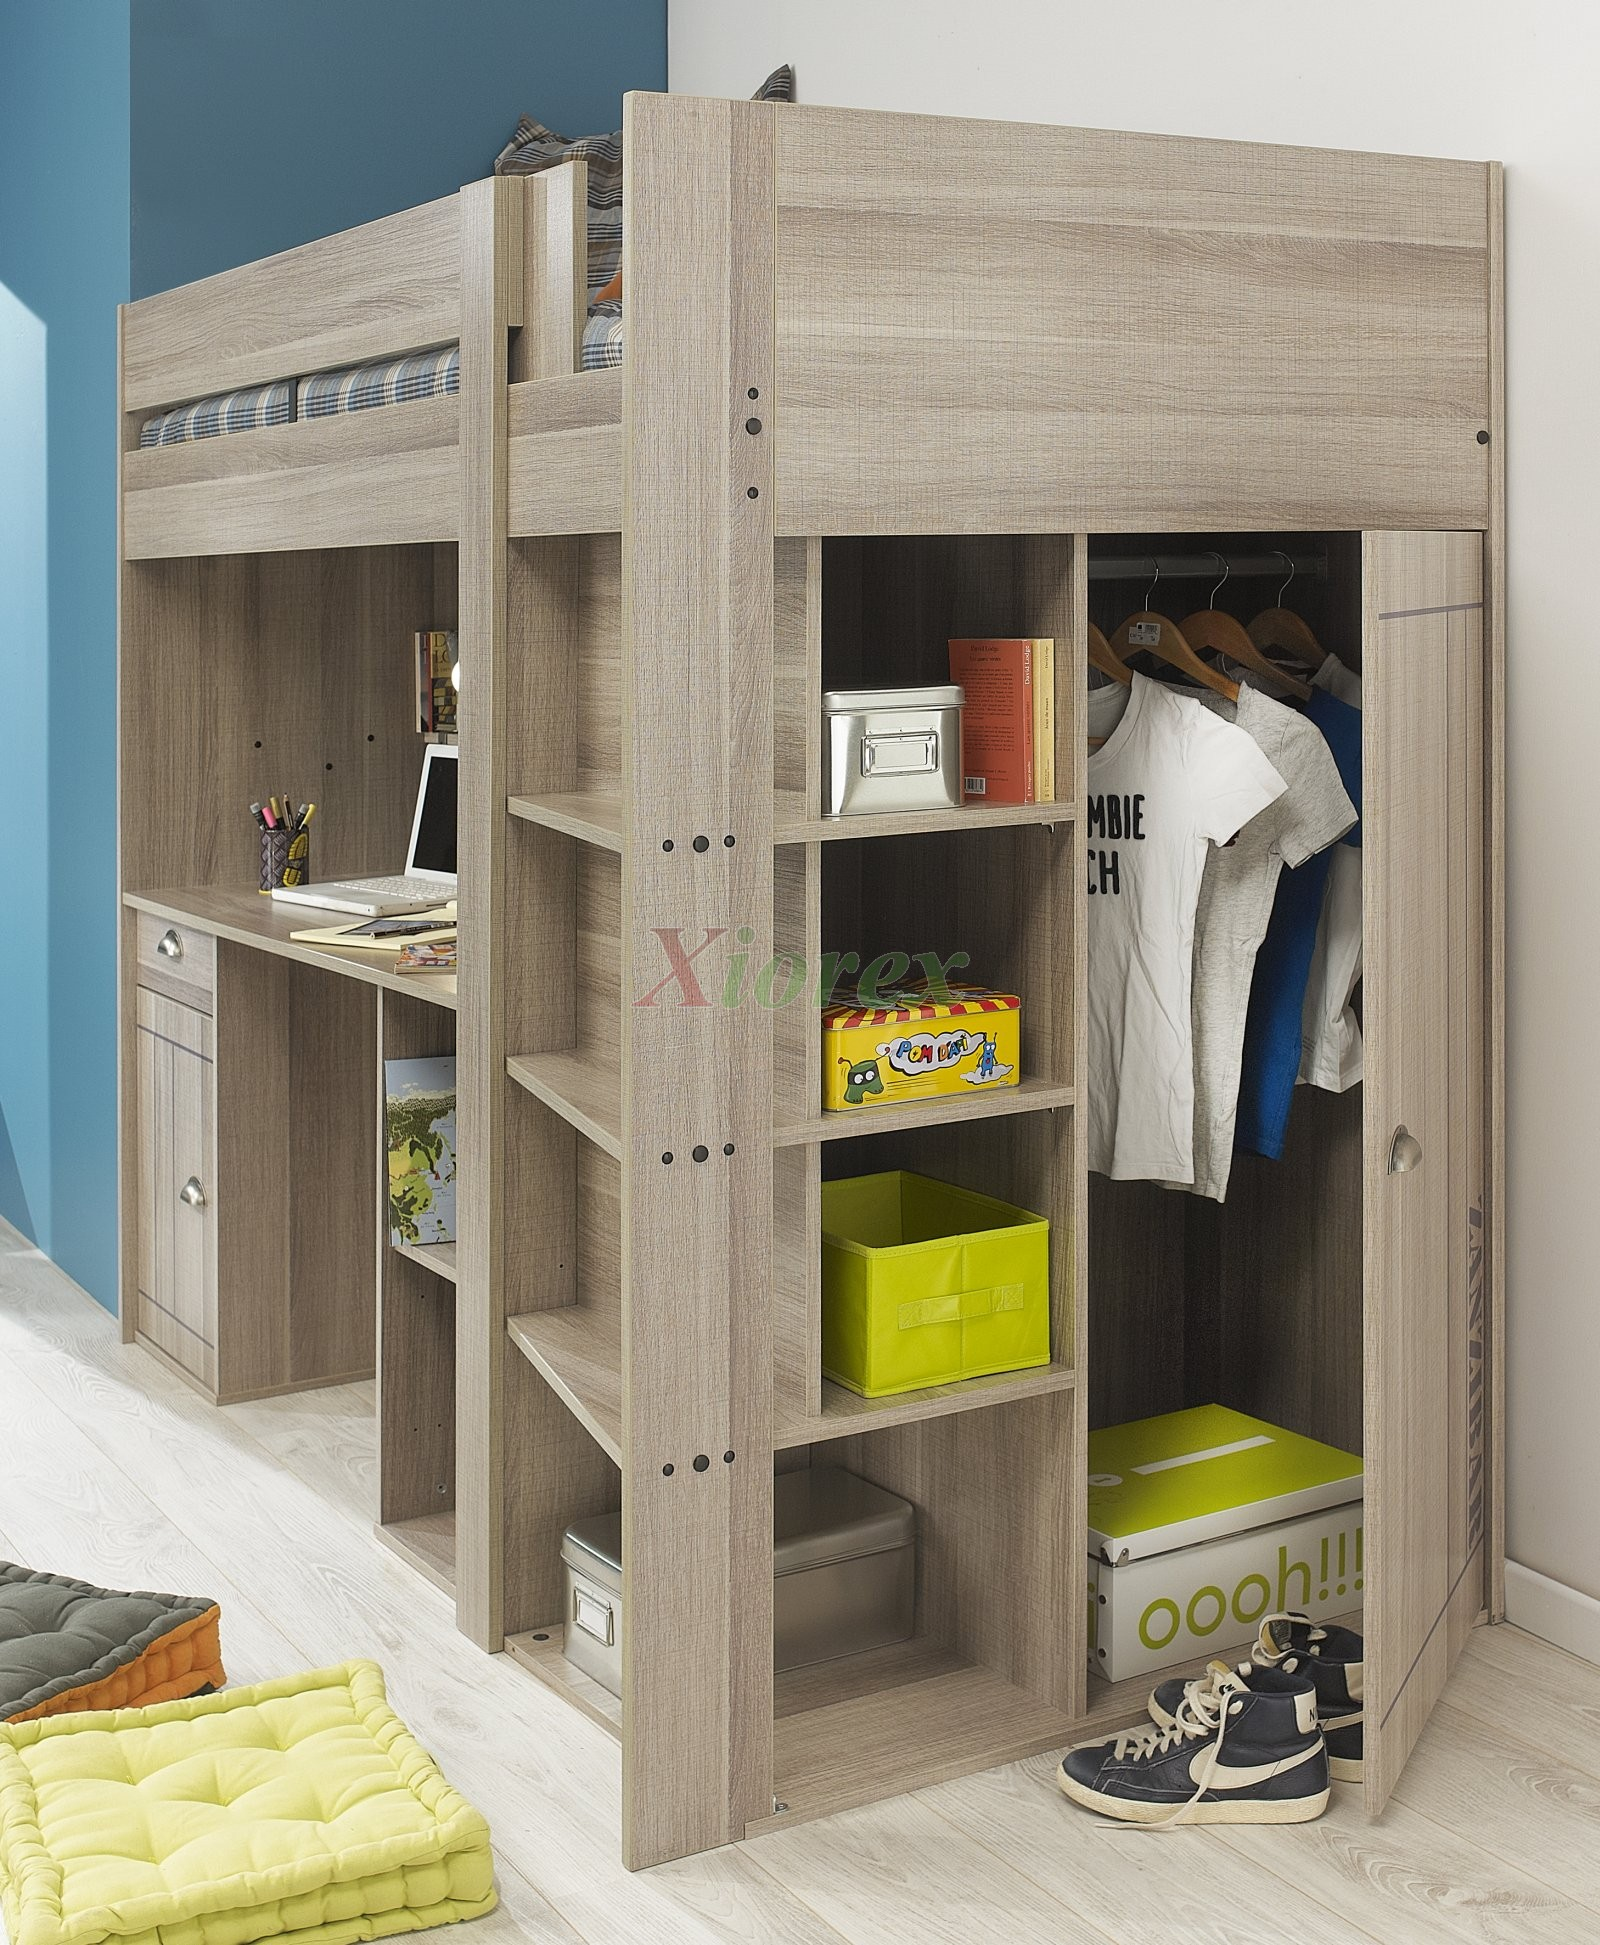 beds ideas build to design kids home desk with how bed bunk